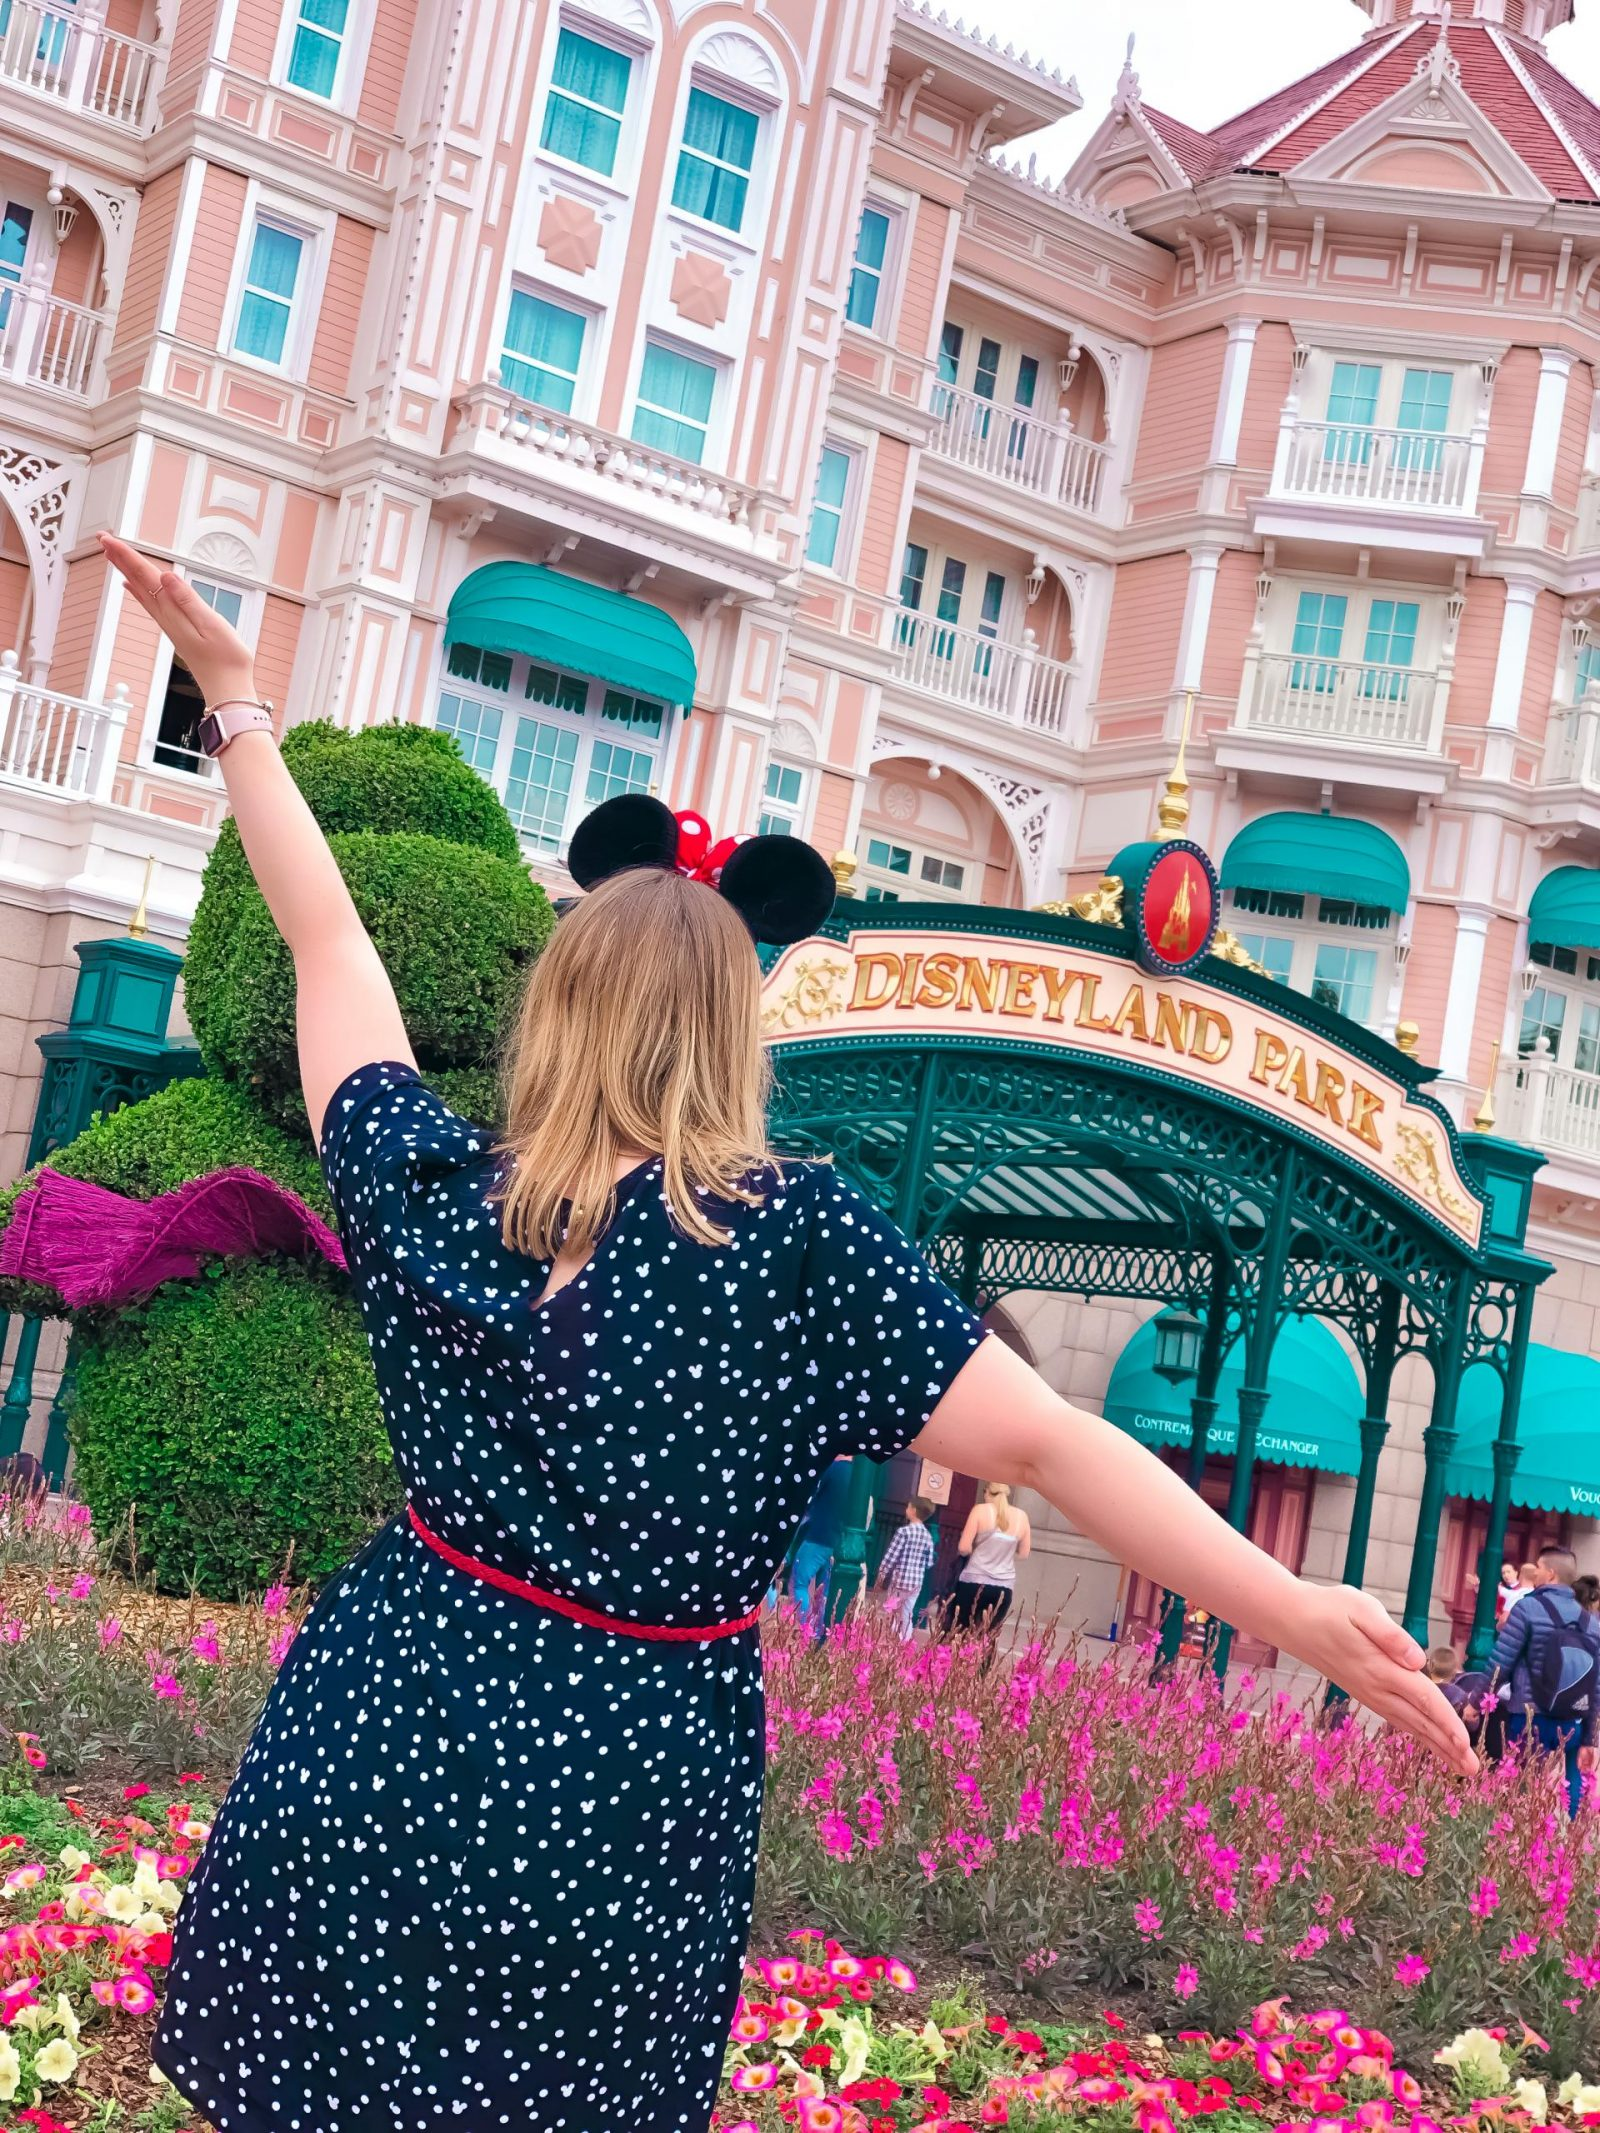 Disneyland Hotel - one of the most Instagrammable spots at Disneyland Paris